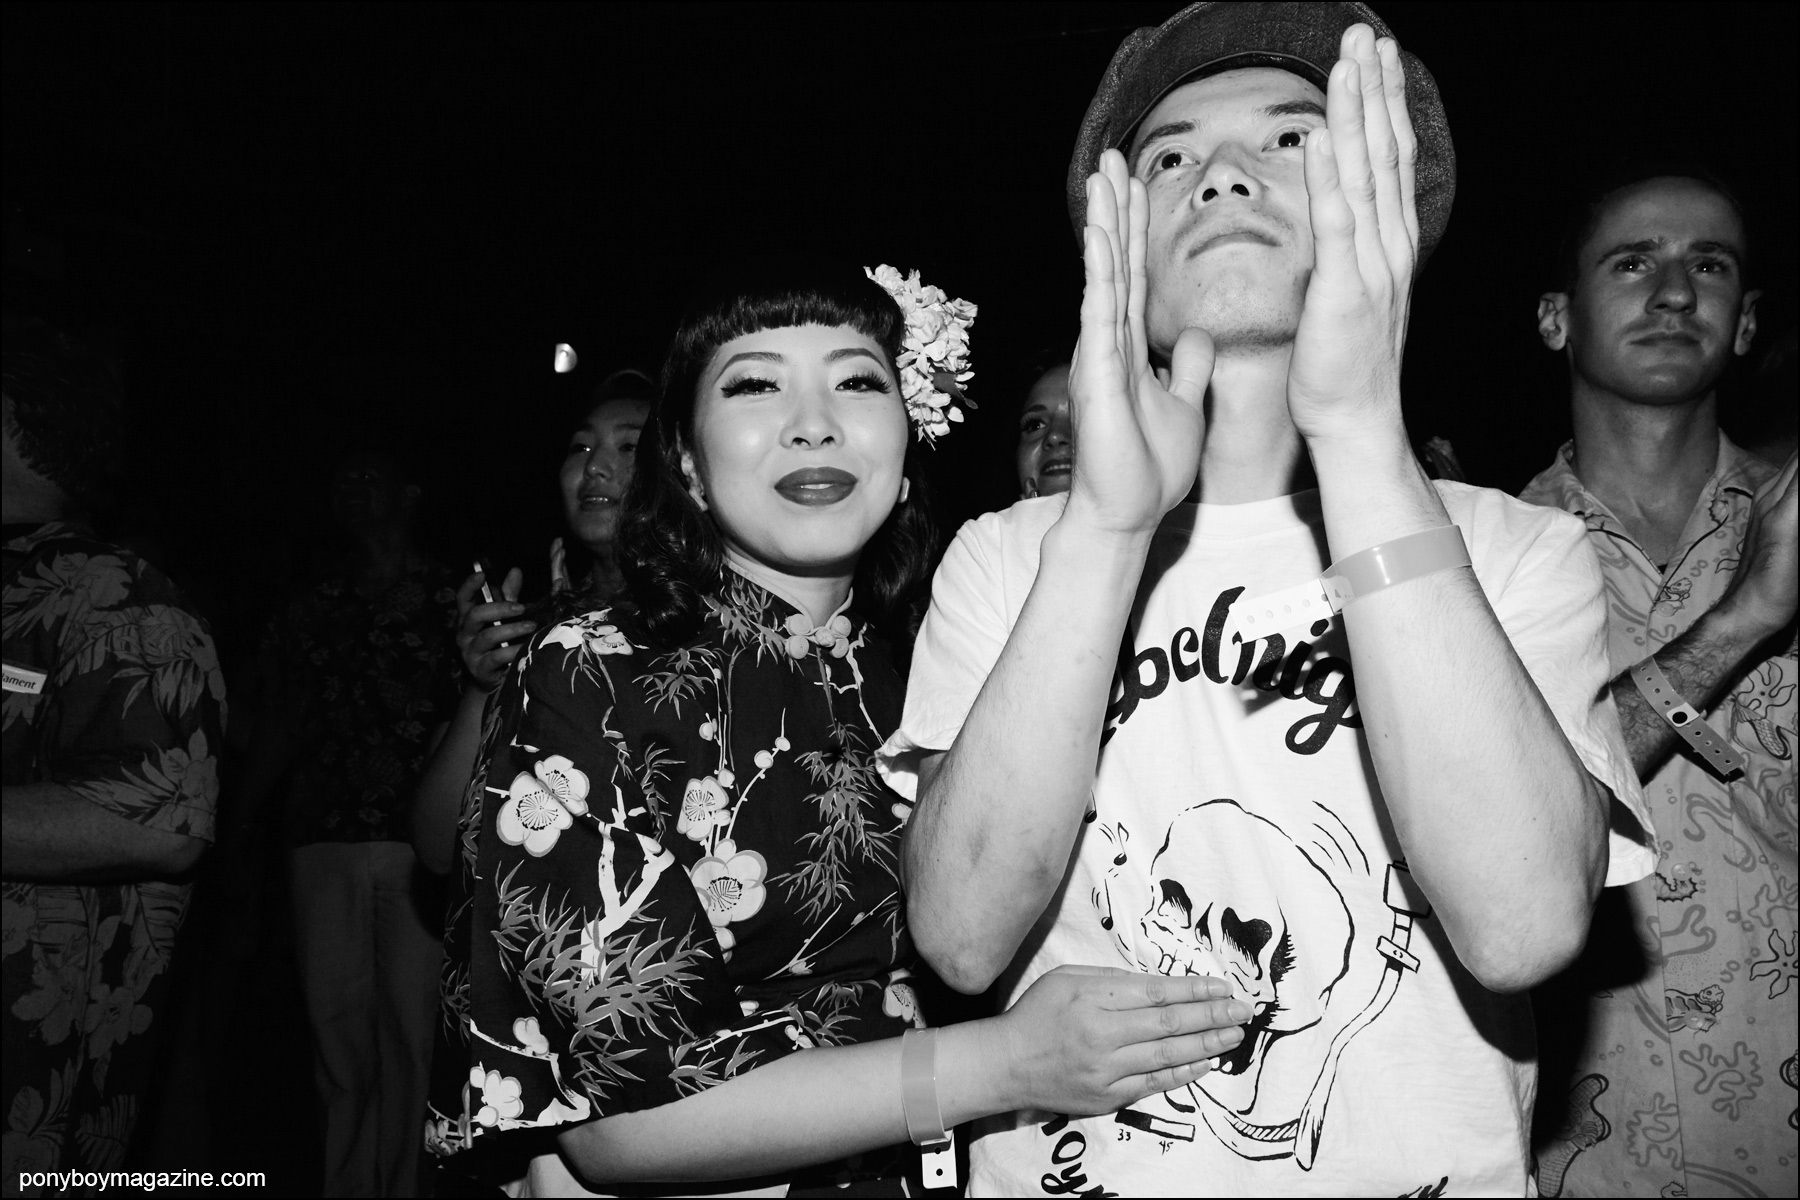 Rockabilly onlookers photographed at Hula Rock Vol 2 weekender in New York City. Photograph by Alexander Thompson for Ponyboy magazine NY.